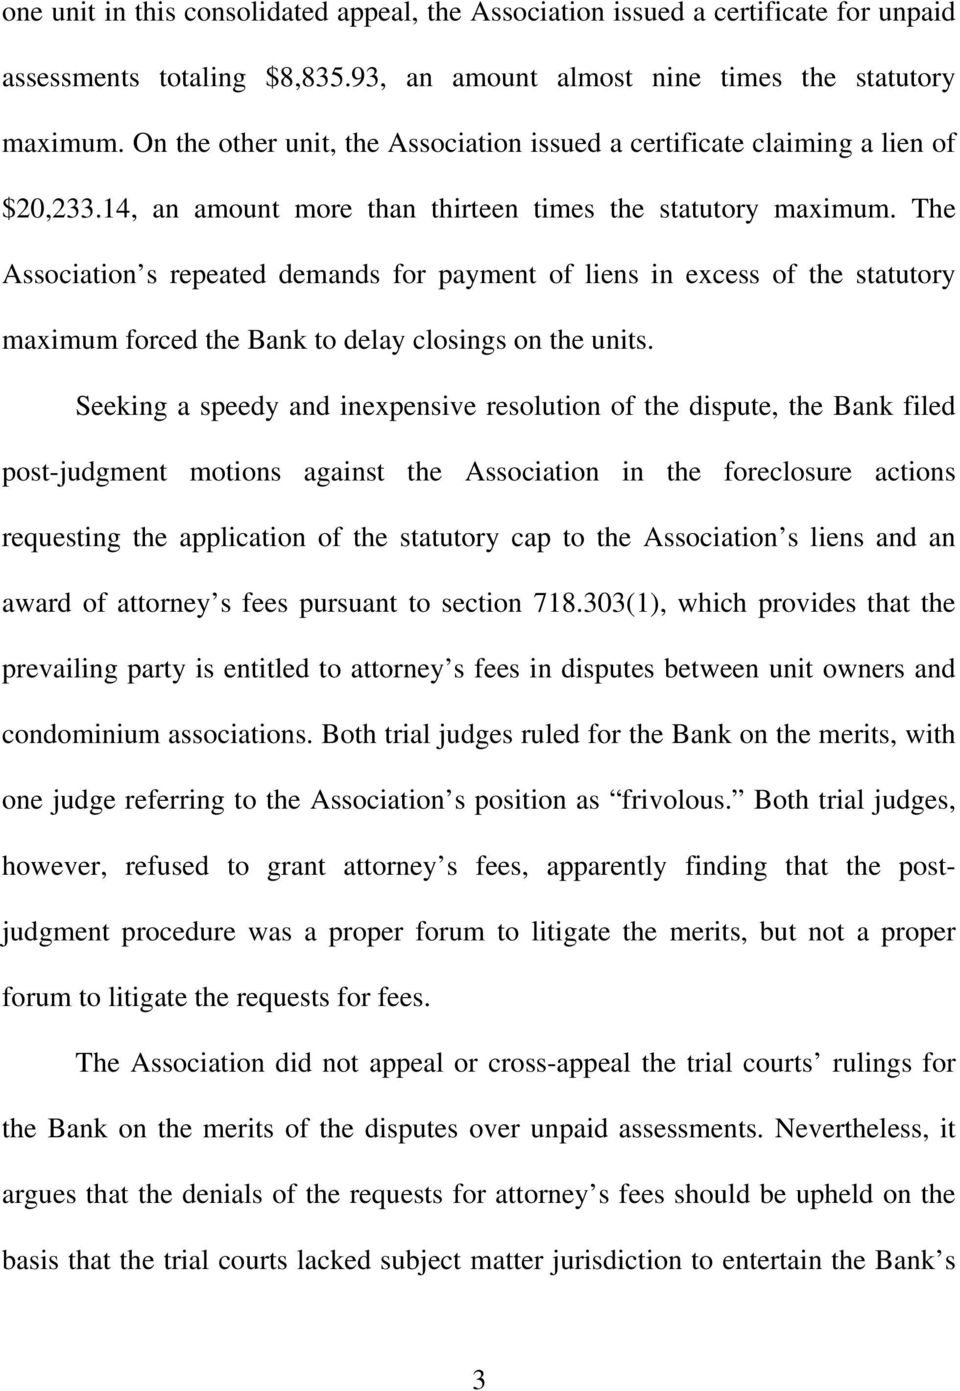 The Association s repeated demands for payment of liens in excess of the statutory maximum forced the Bank to delay closings on the units.